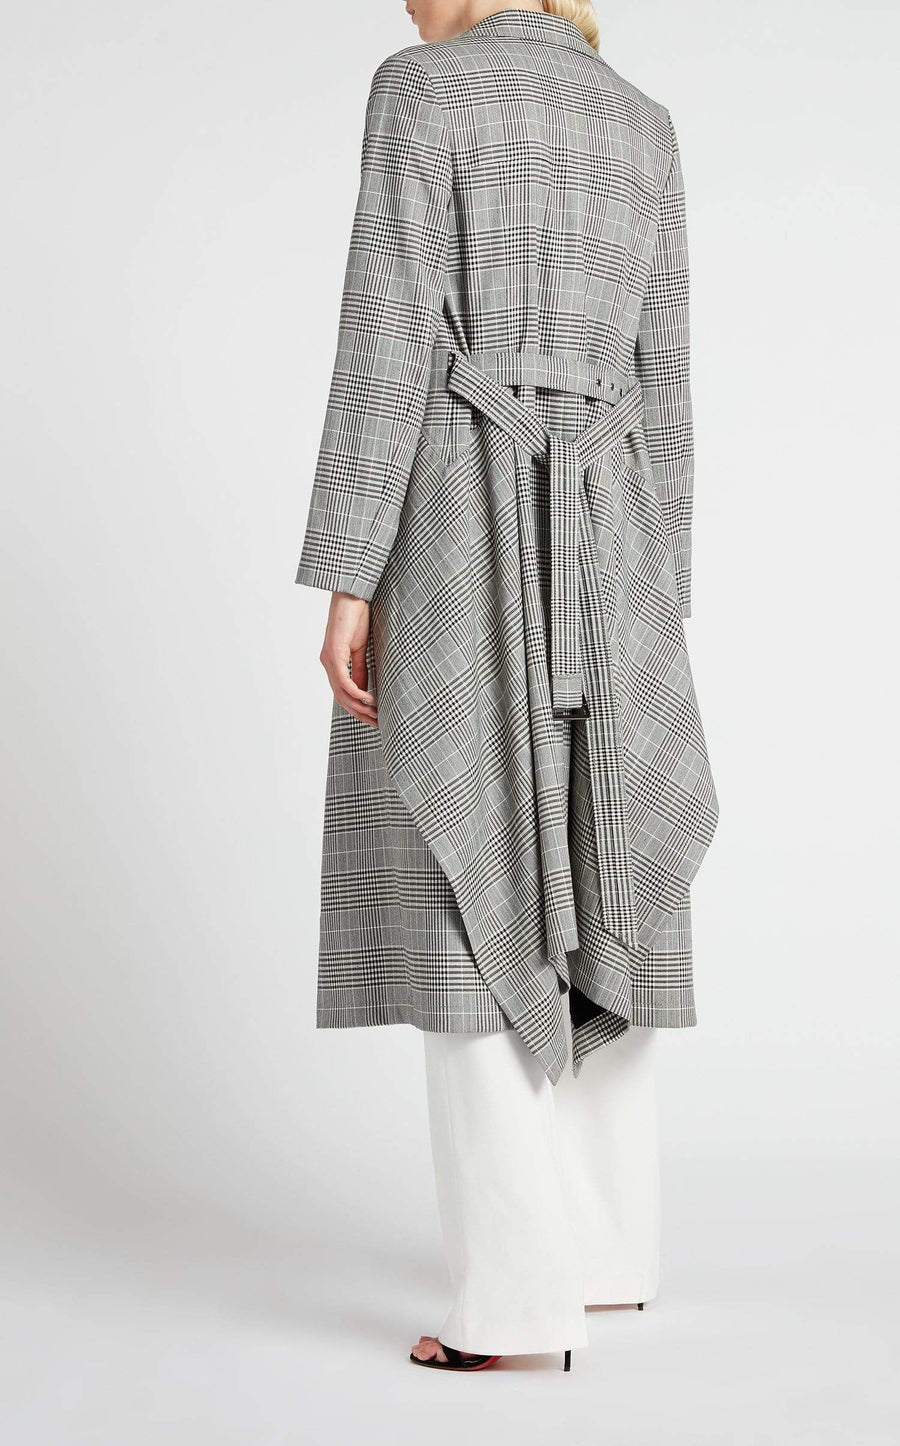 Pullman Coat In Monochrome from Roland Mouret